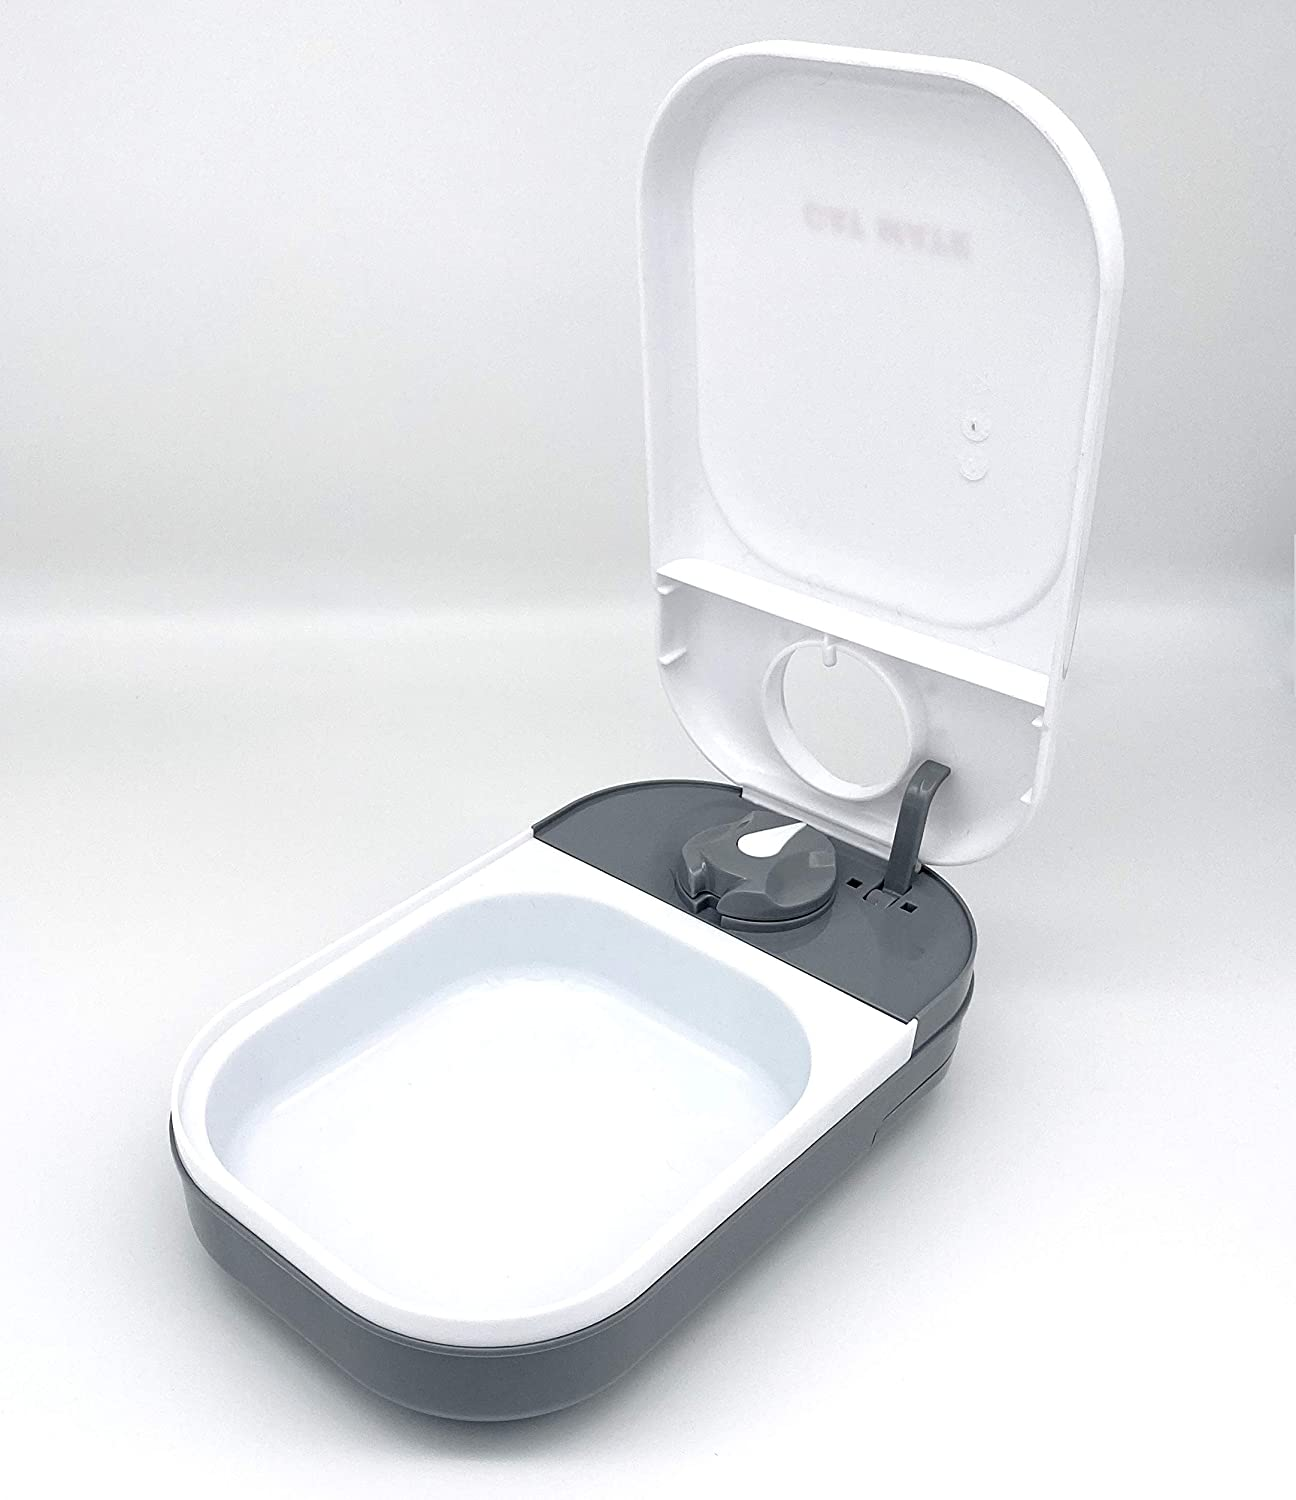 Cat Mate C100 Automatic Pet Feeder - Holds 14 oz. of Wet Food - Suitable for All Cats and Small Dogs